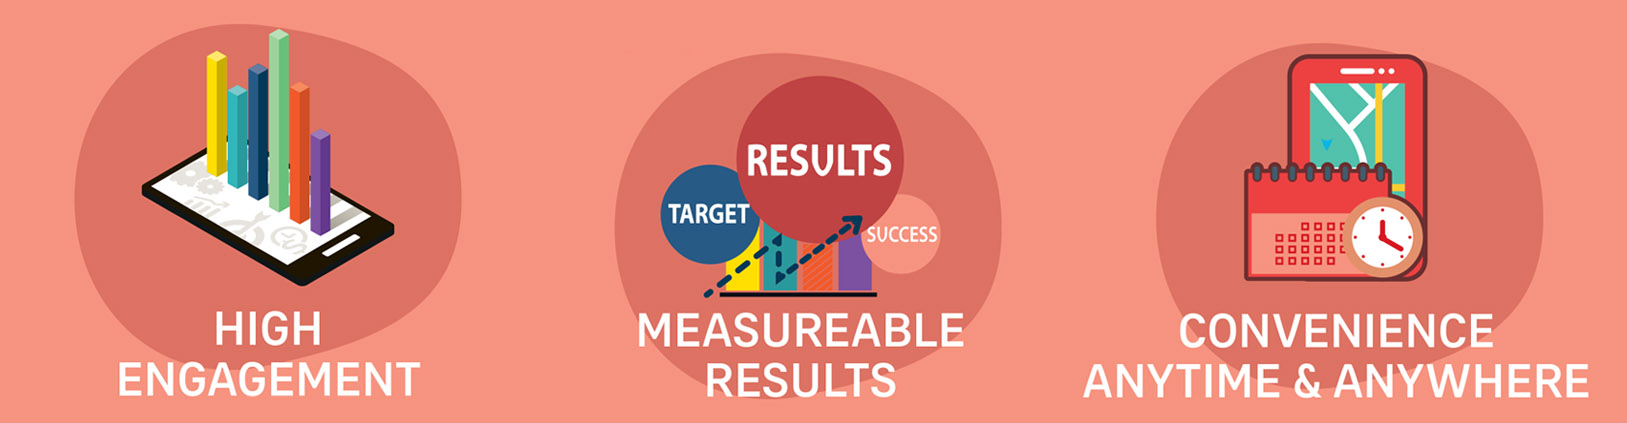 high engaging, measurable results, convenience anytime & anywhere